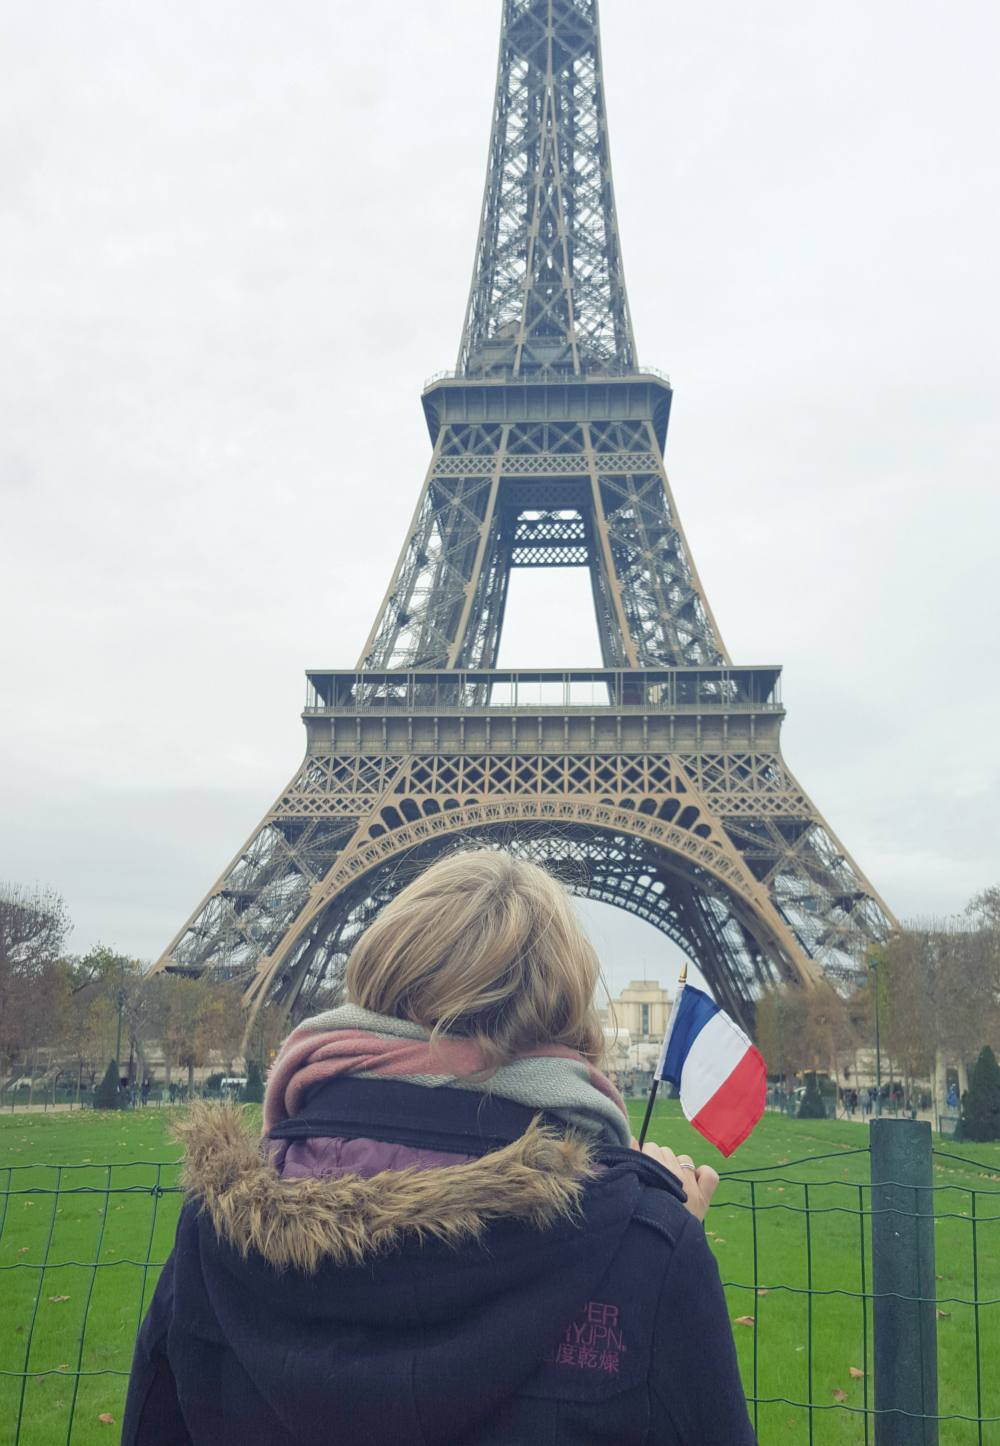 Terror attacks in Paris - The Eiffel Tower